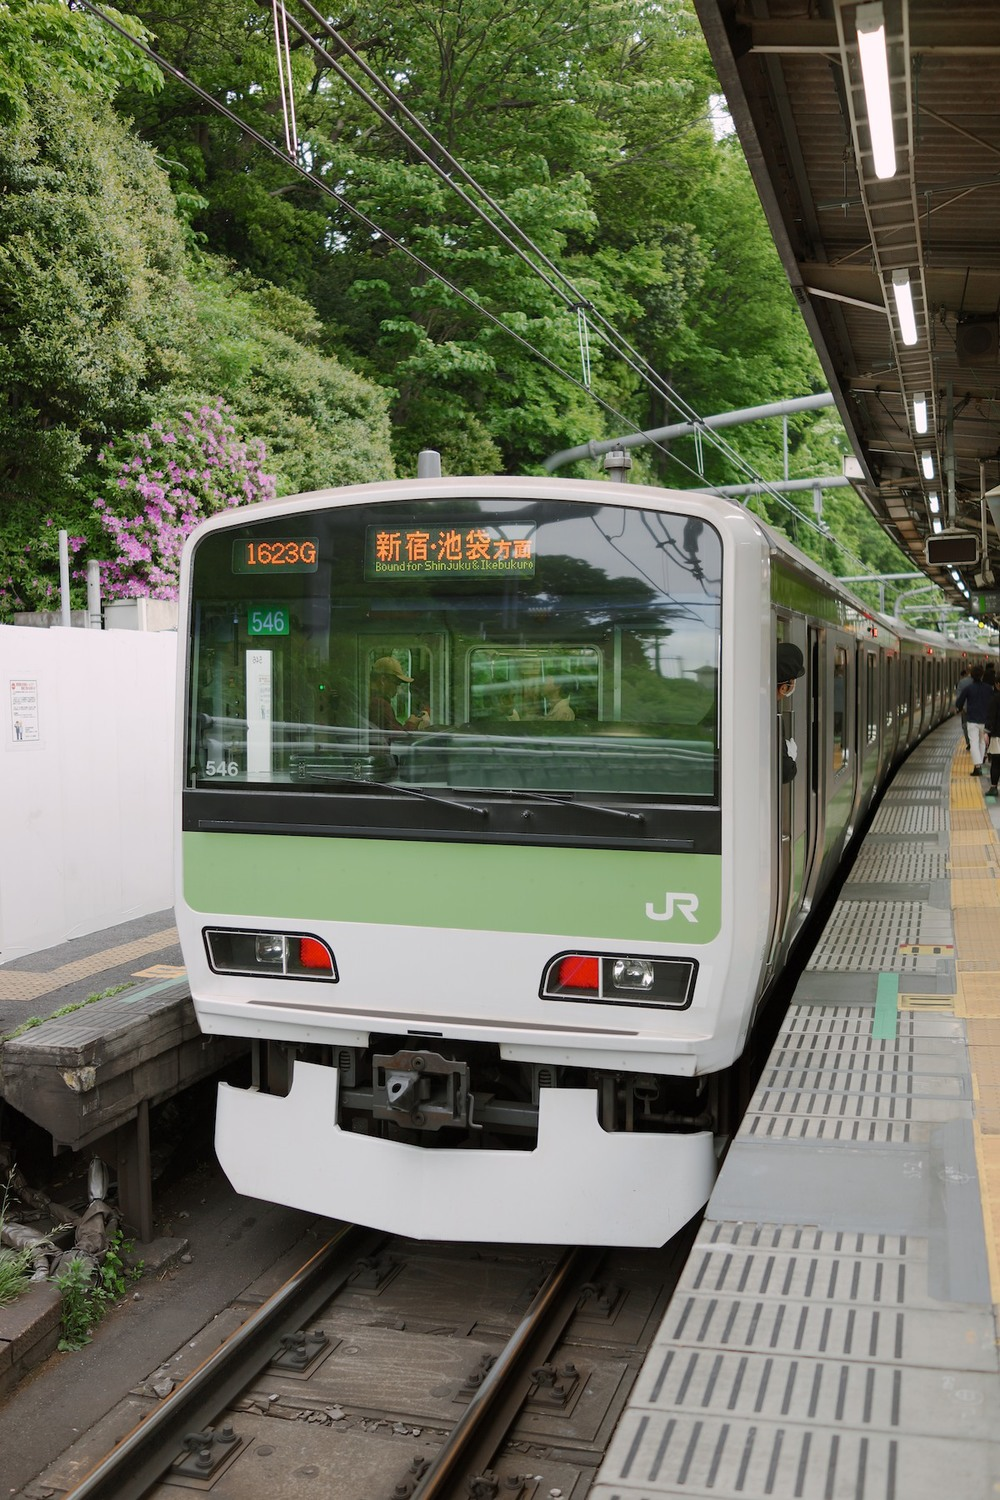 A JR train stopped at Harajuku station.